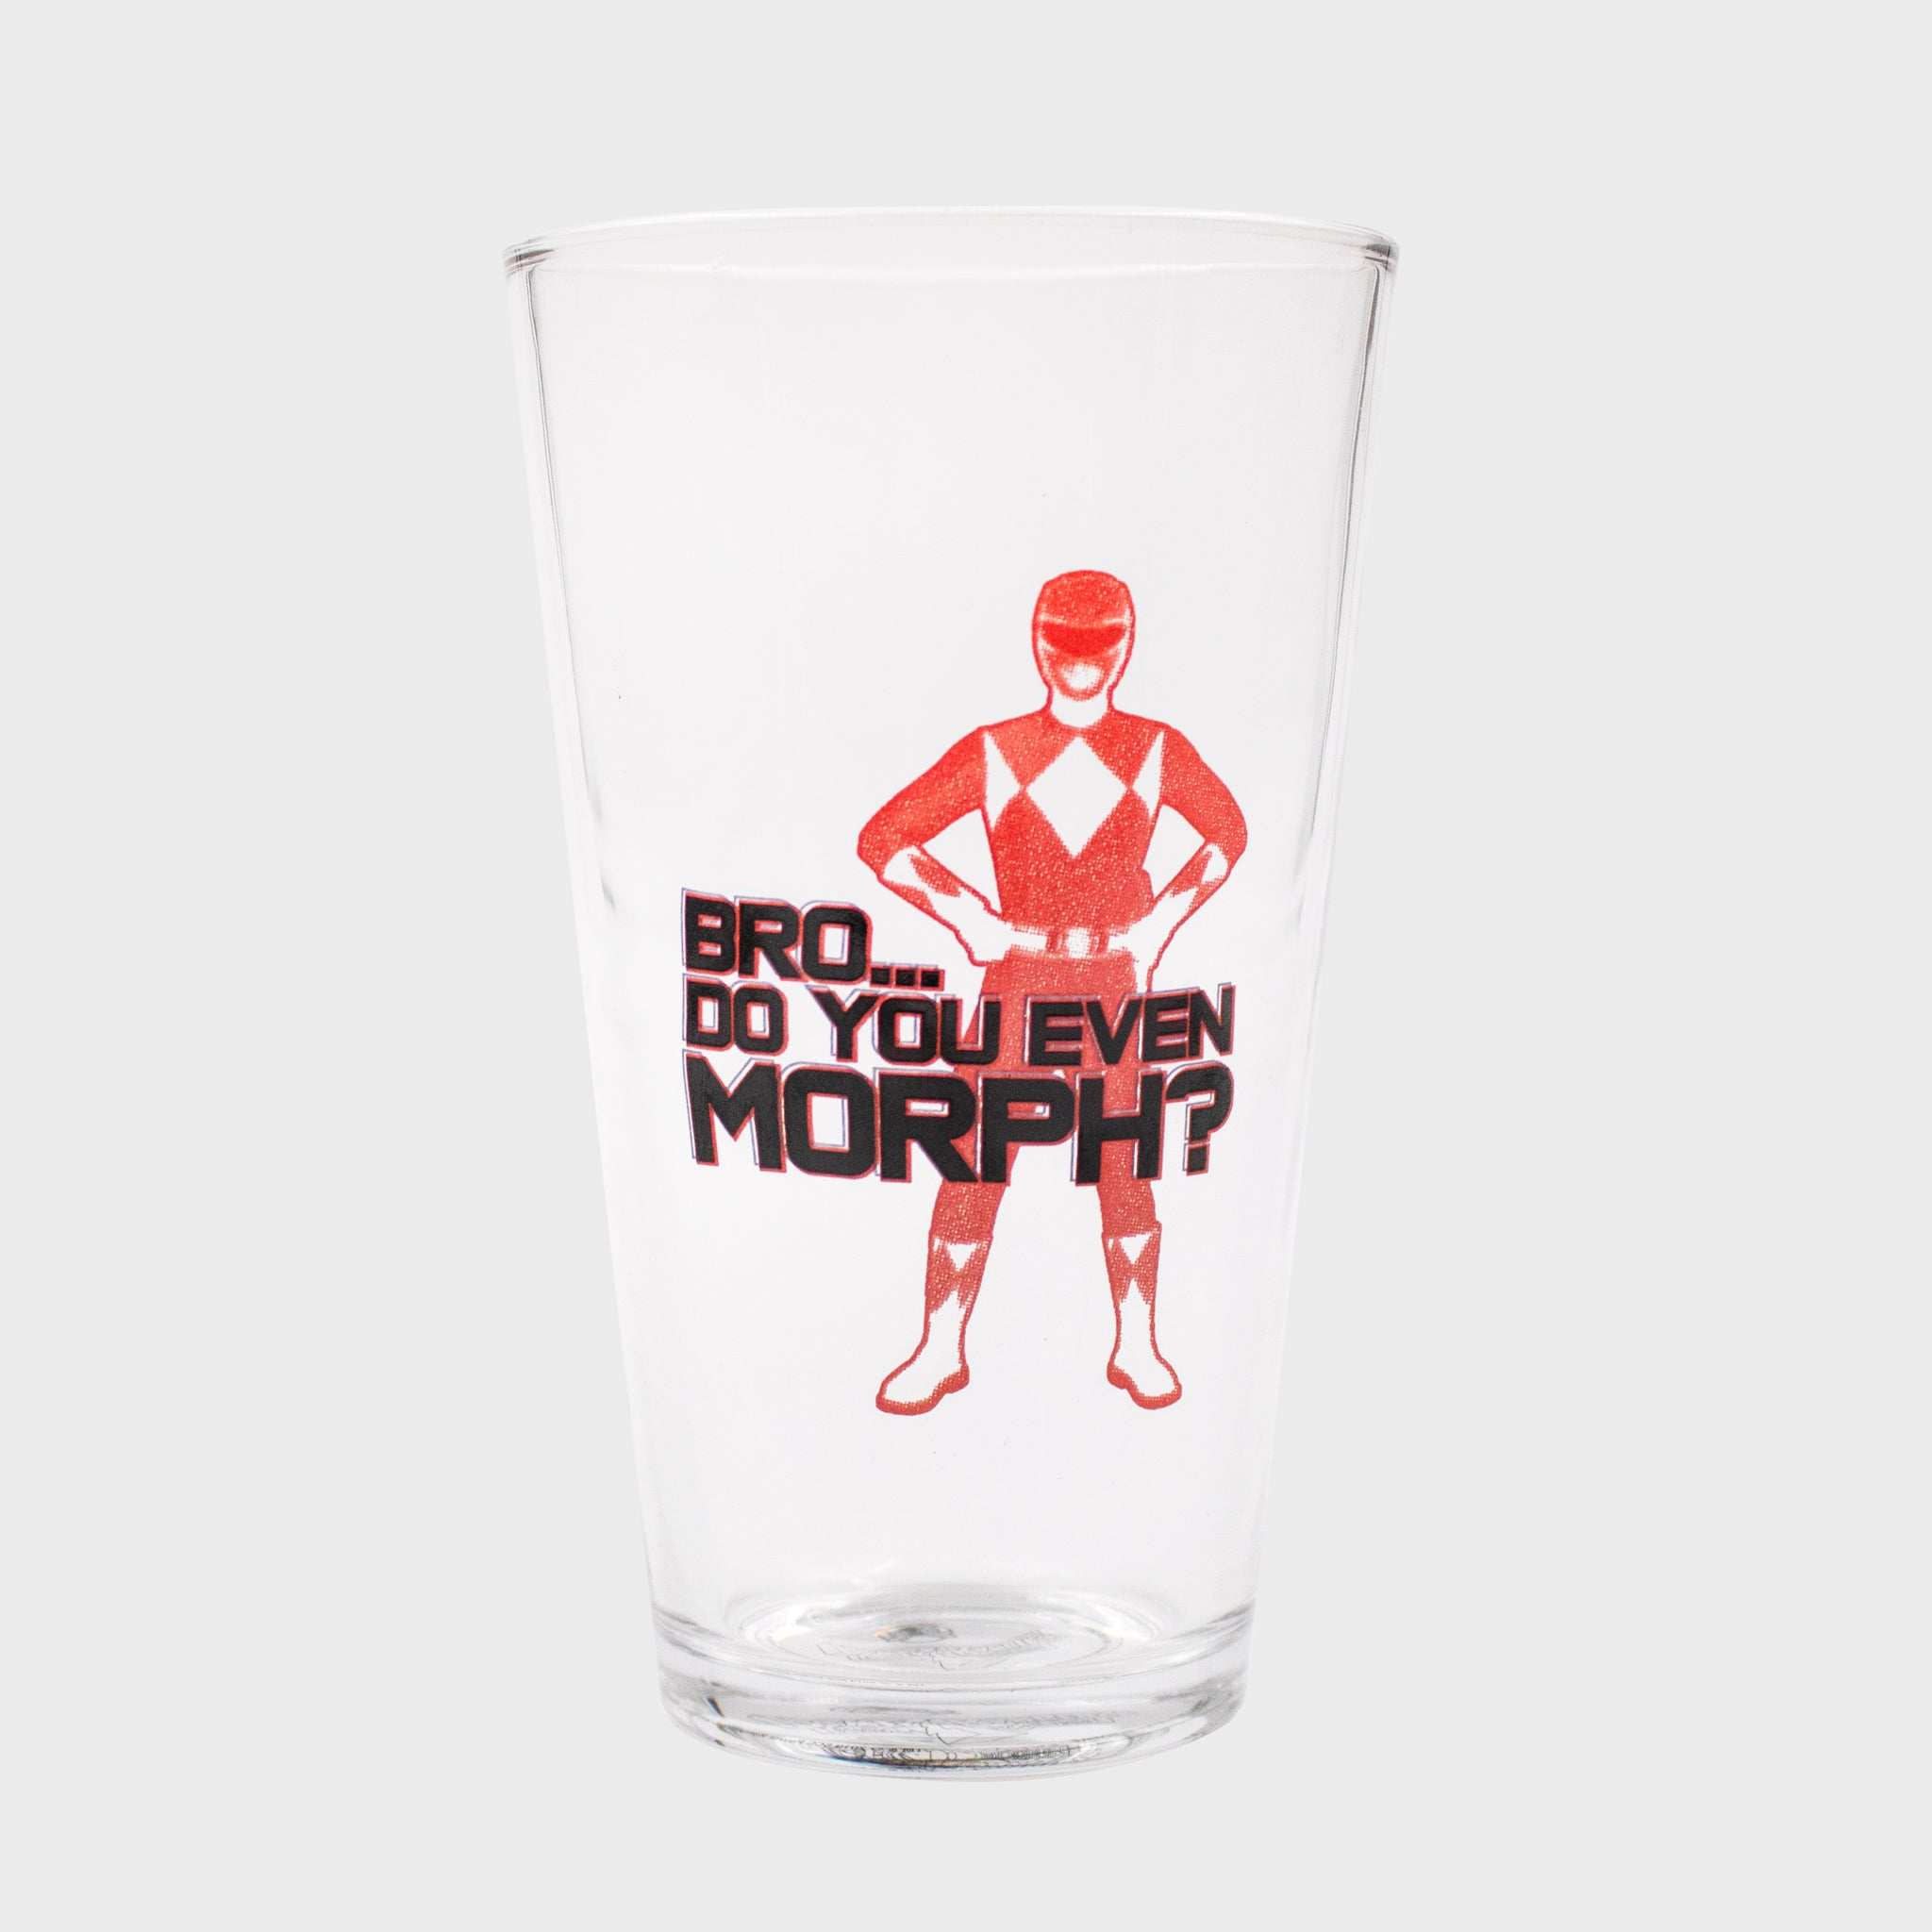 power rangers mighty morphin mmpr 90s kids red ranger exclusive gamestop retail box collectibles culturefly pint glass kitchenware drinkware